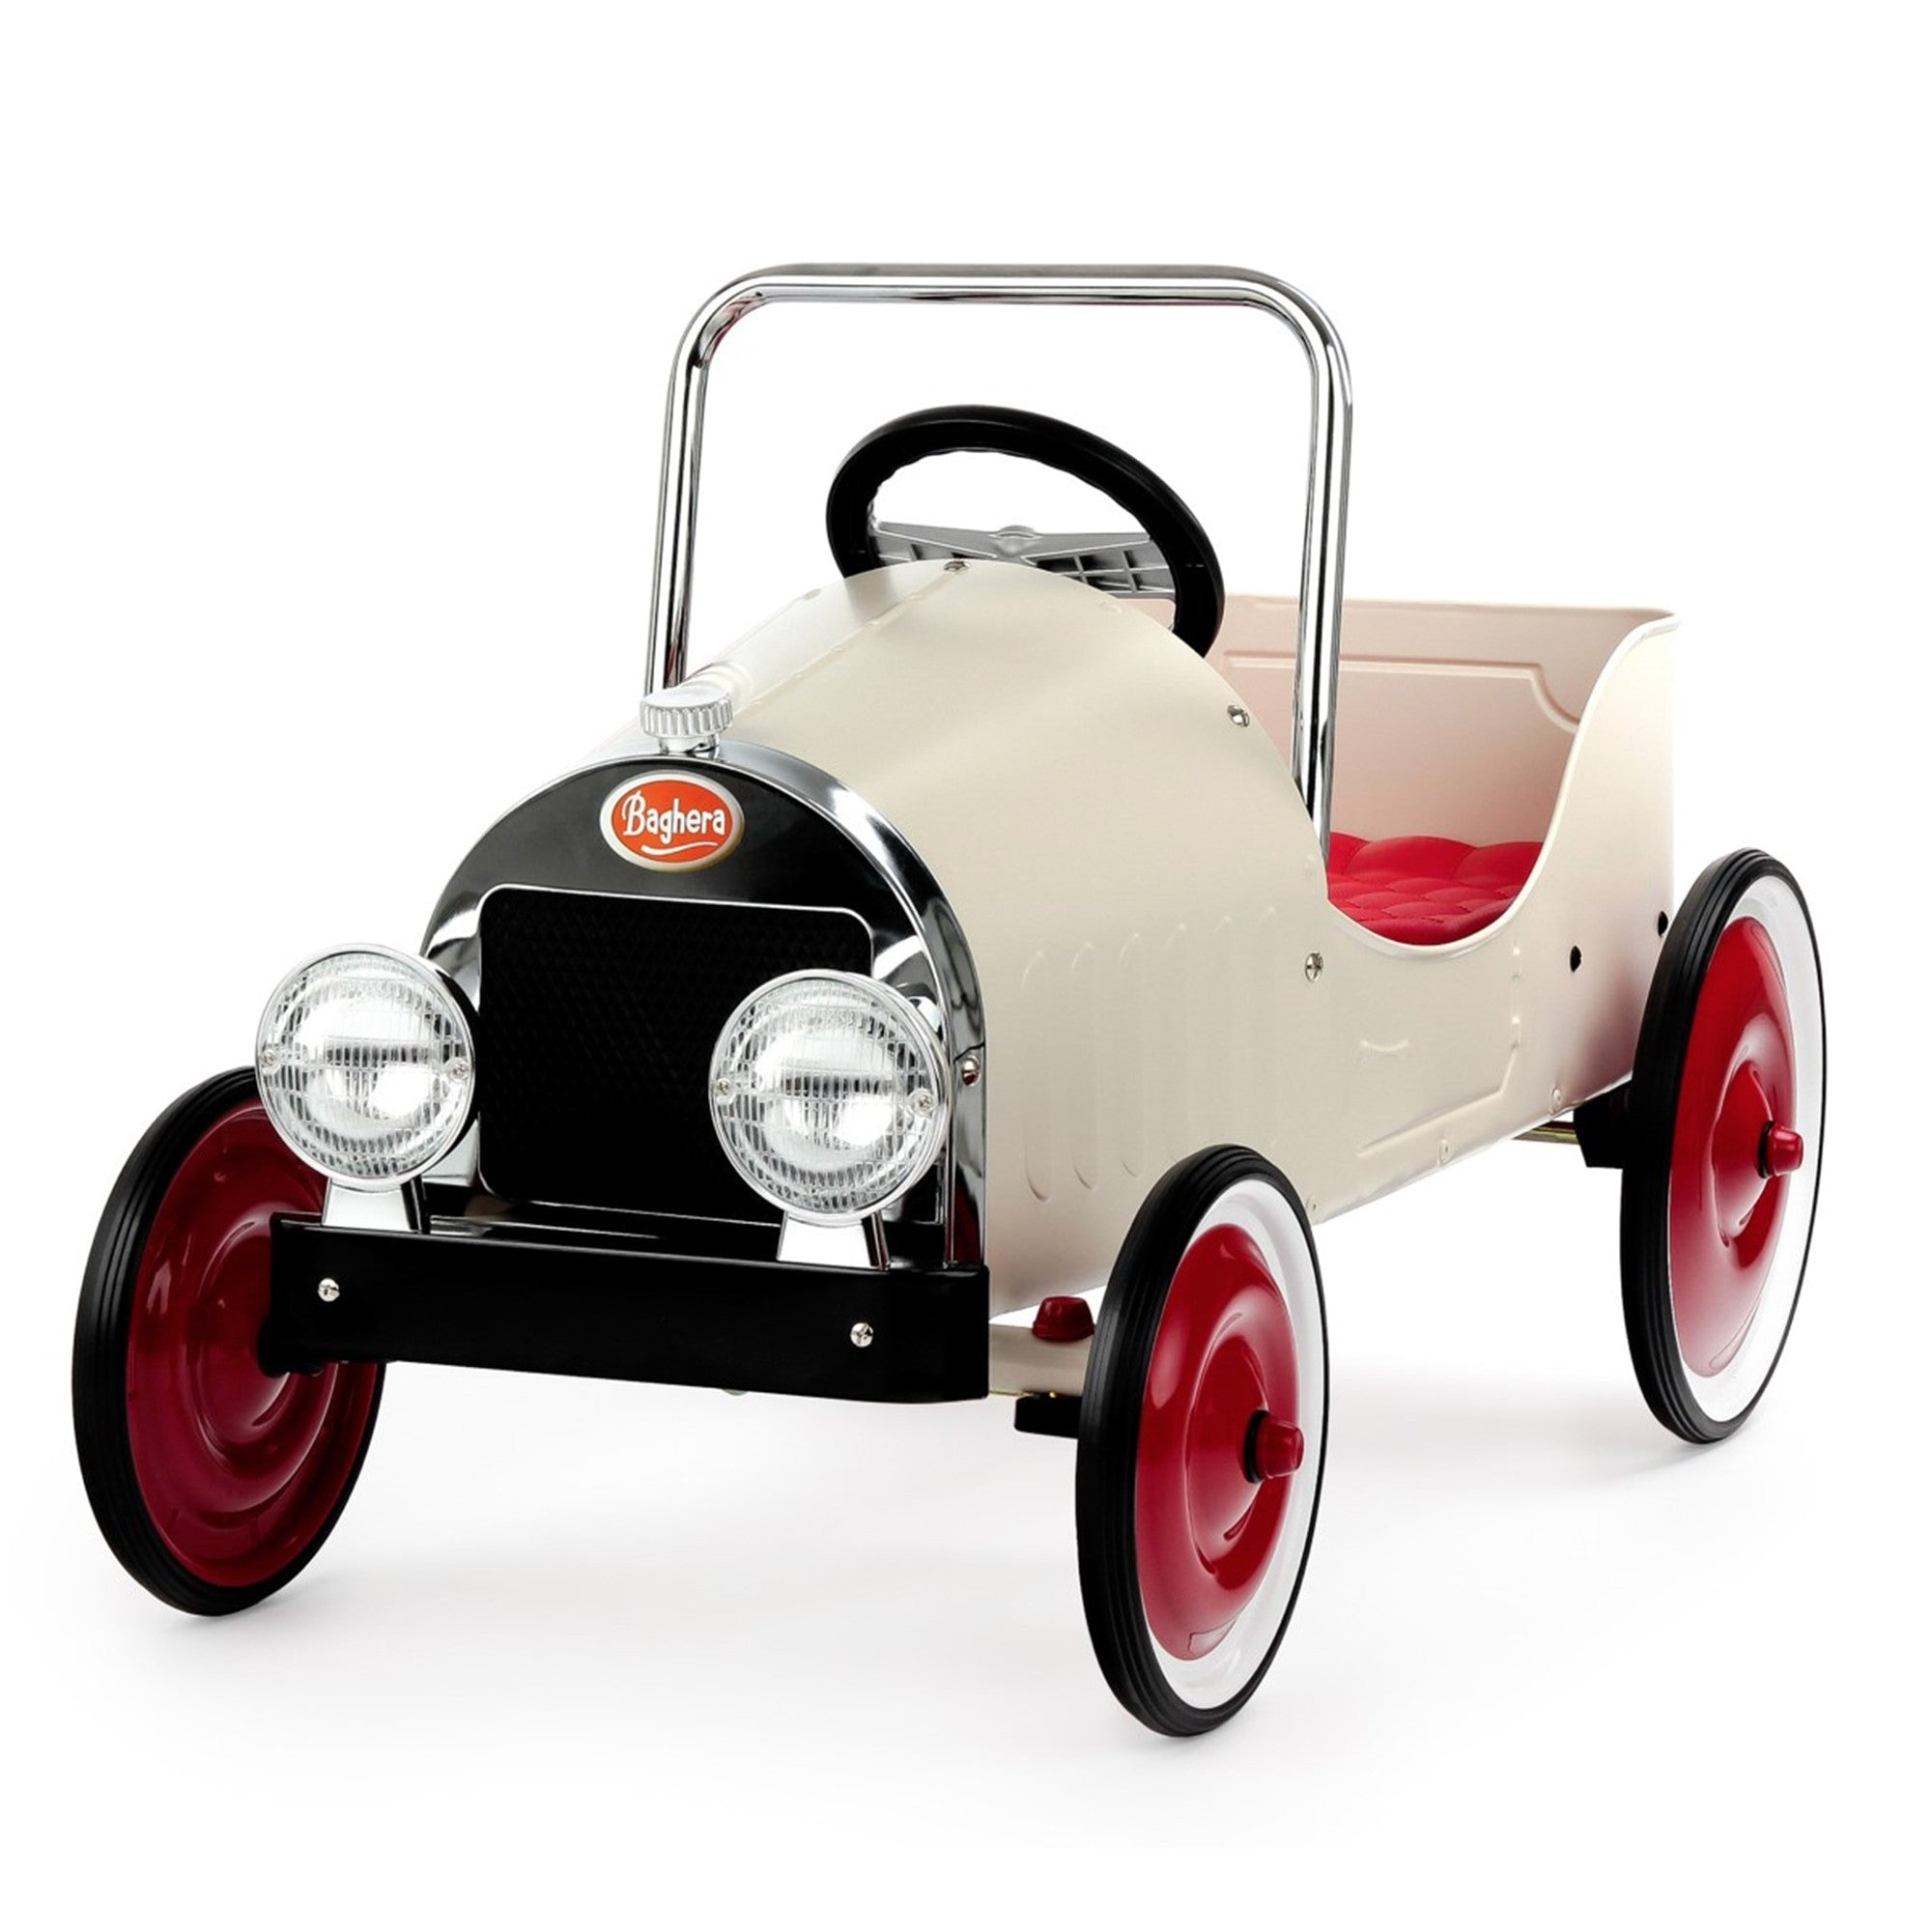 Classic Baghera Pedal Car Baghera Kids Riding Vehicles White at Little Earth Nest Eco Shop